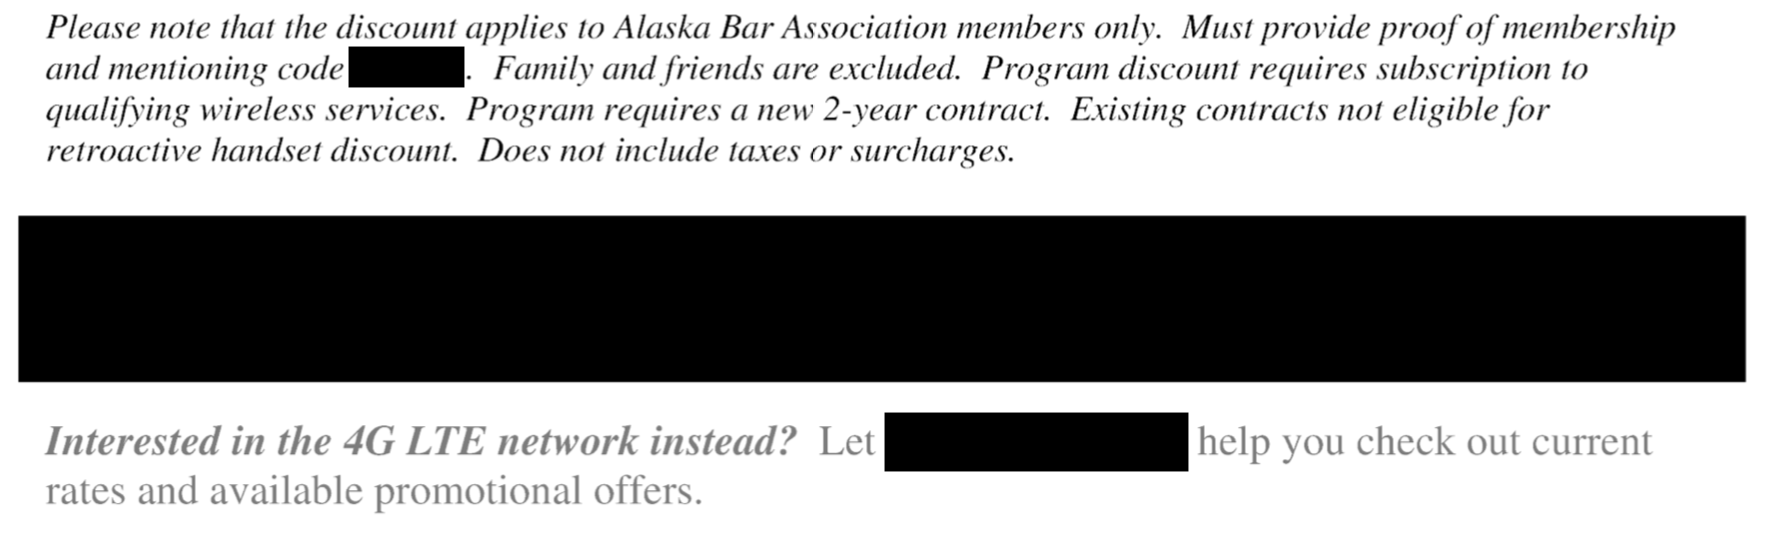 Redacted text is completely removed from produced documents